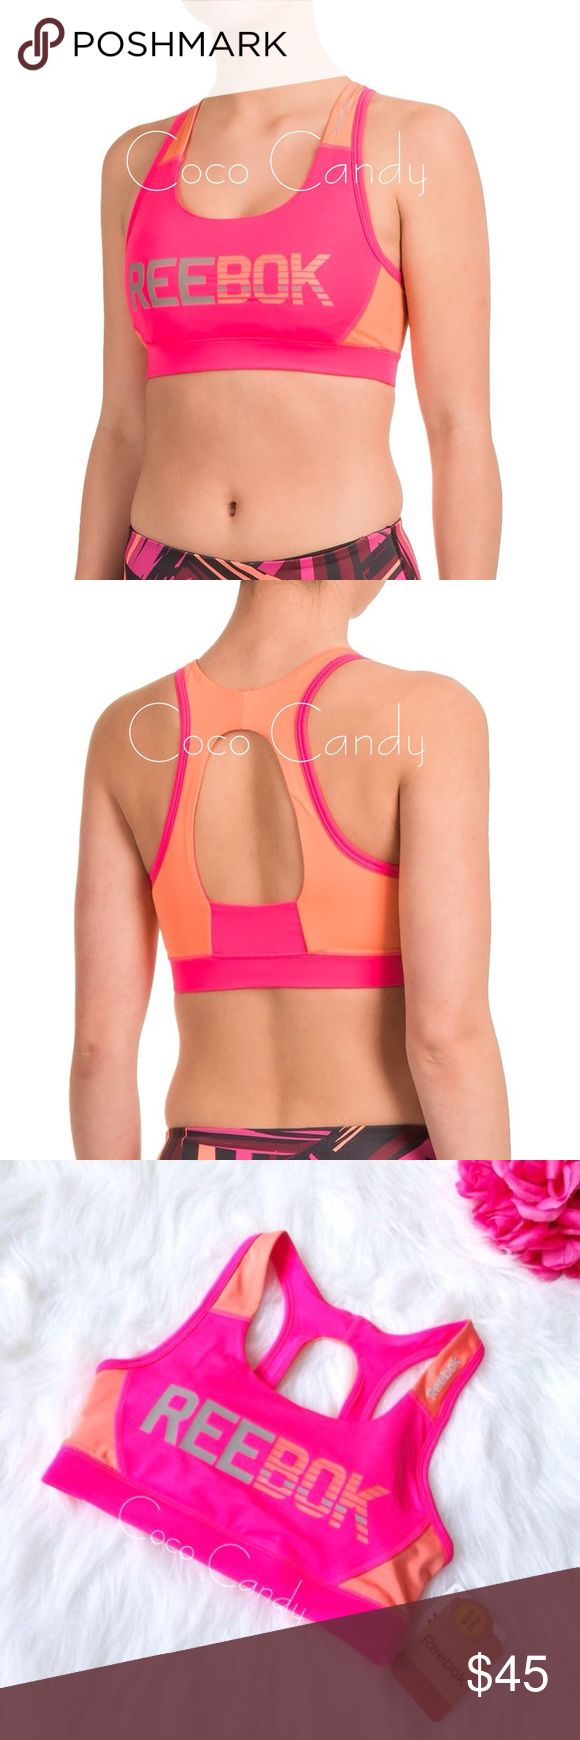 ⭐️SALE‼️Reebok Sports Bra Reebok Sports Bra✨  Size: XS✨  New With Tags✨  Color: Pink & Orange✨  Get compressive support without a restrictive fit in Reebok's competitor sports bra, fashioned from moisture wicking knit fabric & a healthy dose of stretch for moveable comfort. Four way stretch & removable padding. Racerback with keyhole design. Logo on front✨  92% polyester 8% spandex  ⭐No Trades ⭐No Modeling ⭐️Use The Offer Button ⭐️15% Off 2 Or More Items ⭐️Free Gift With Every Order ⭐️Same…